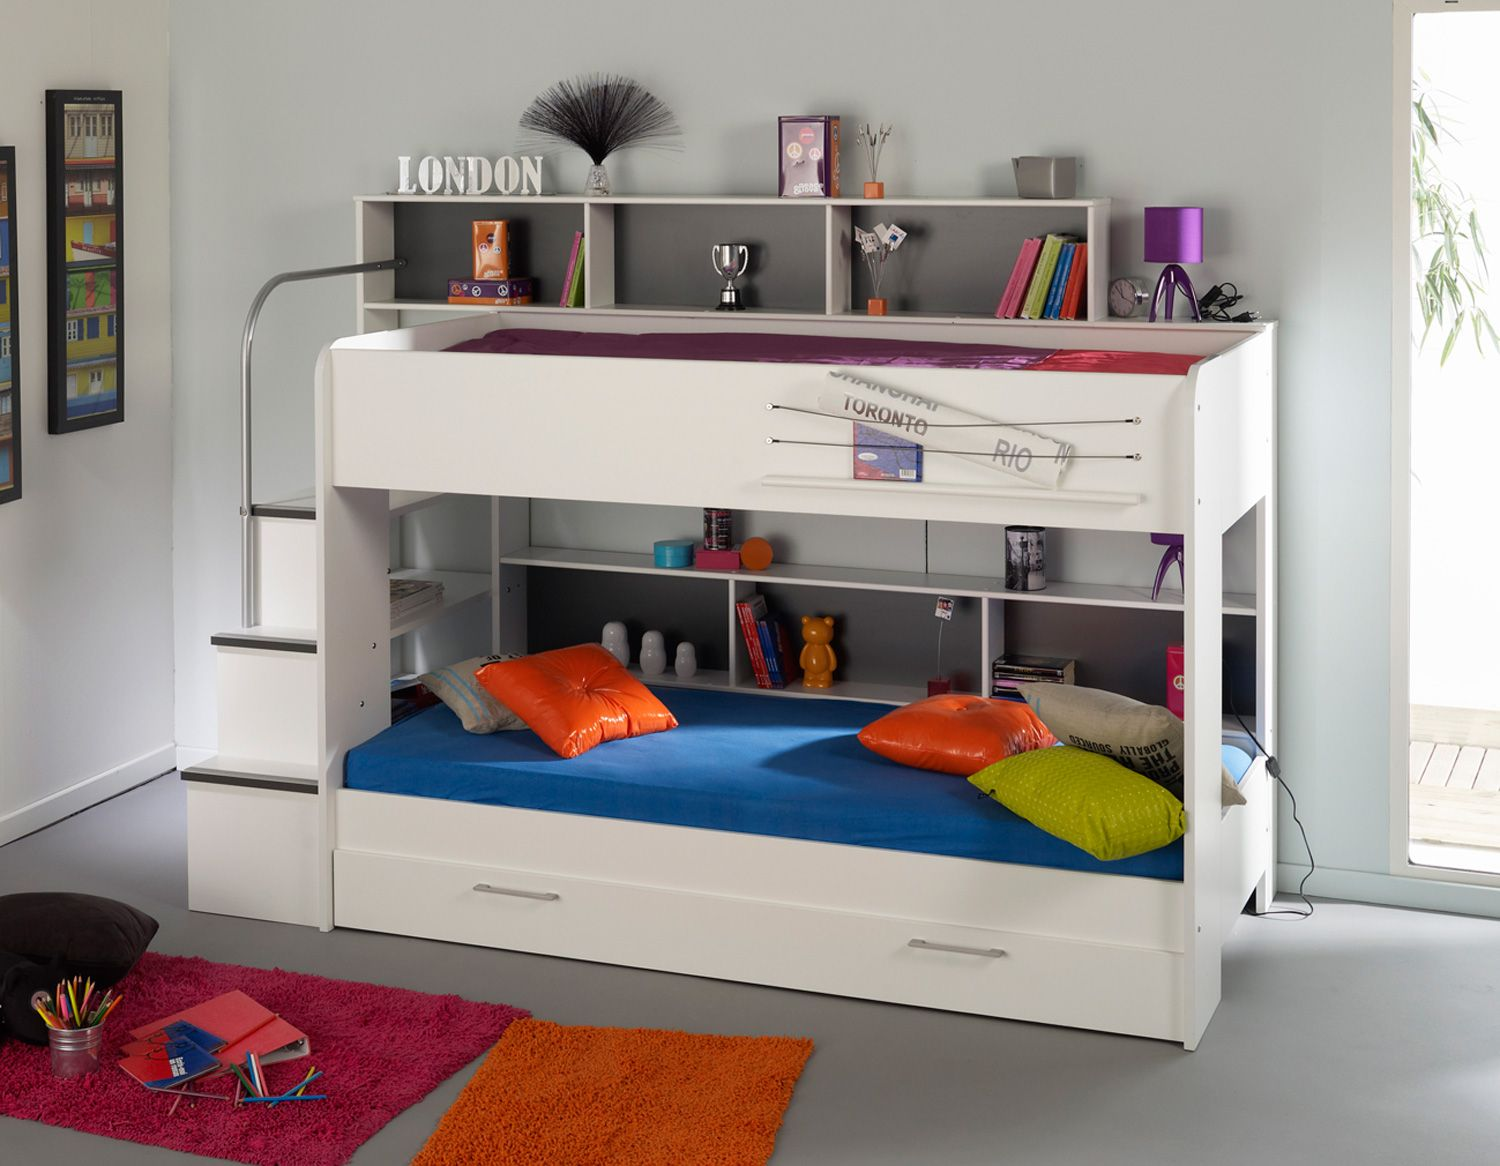 30 space saving beds for small rooms bunk bed bunk bed - Space saving bunk beds for small rooms ...